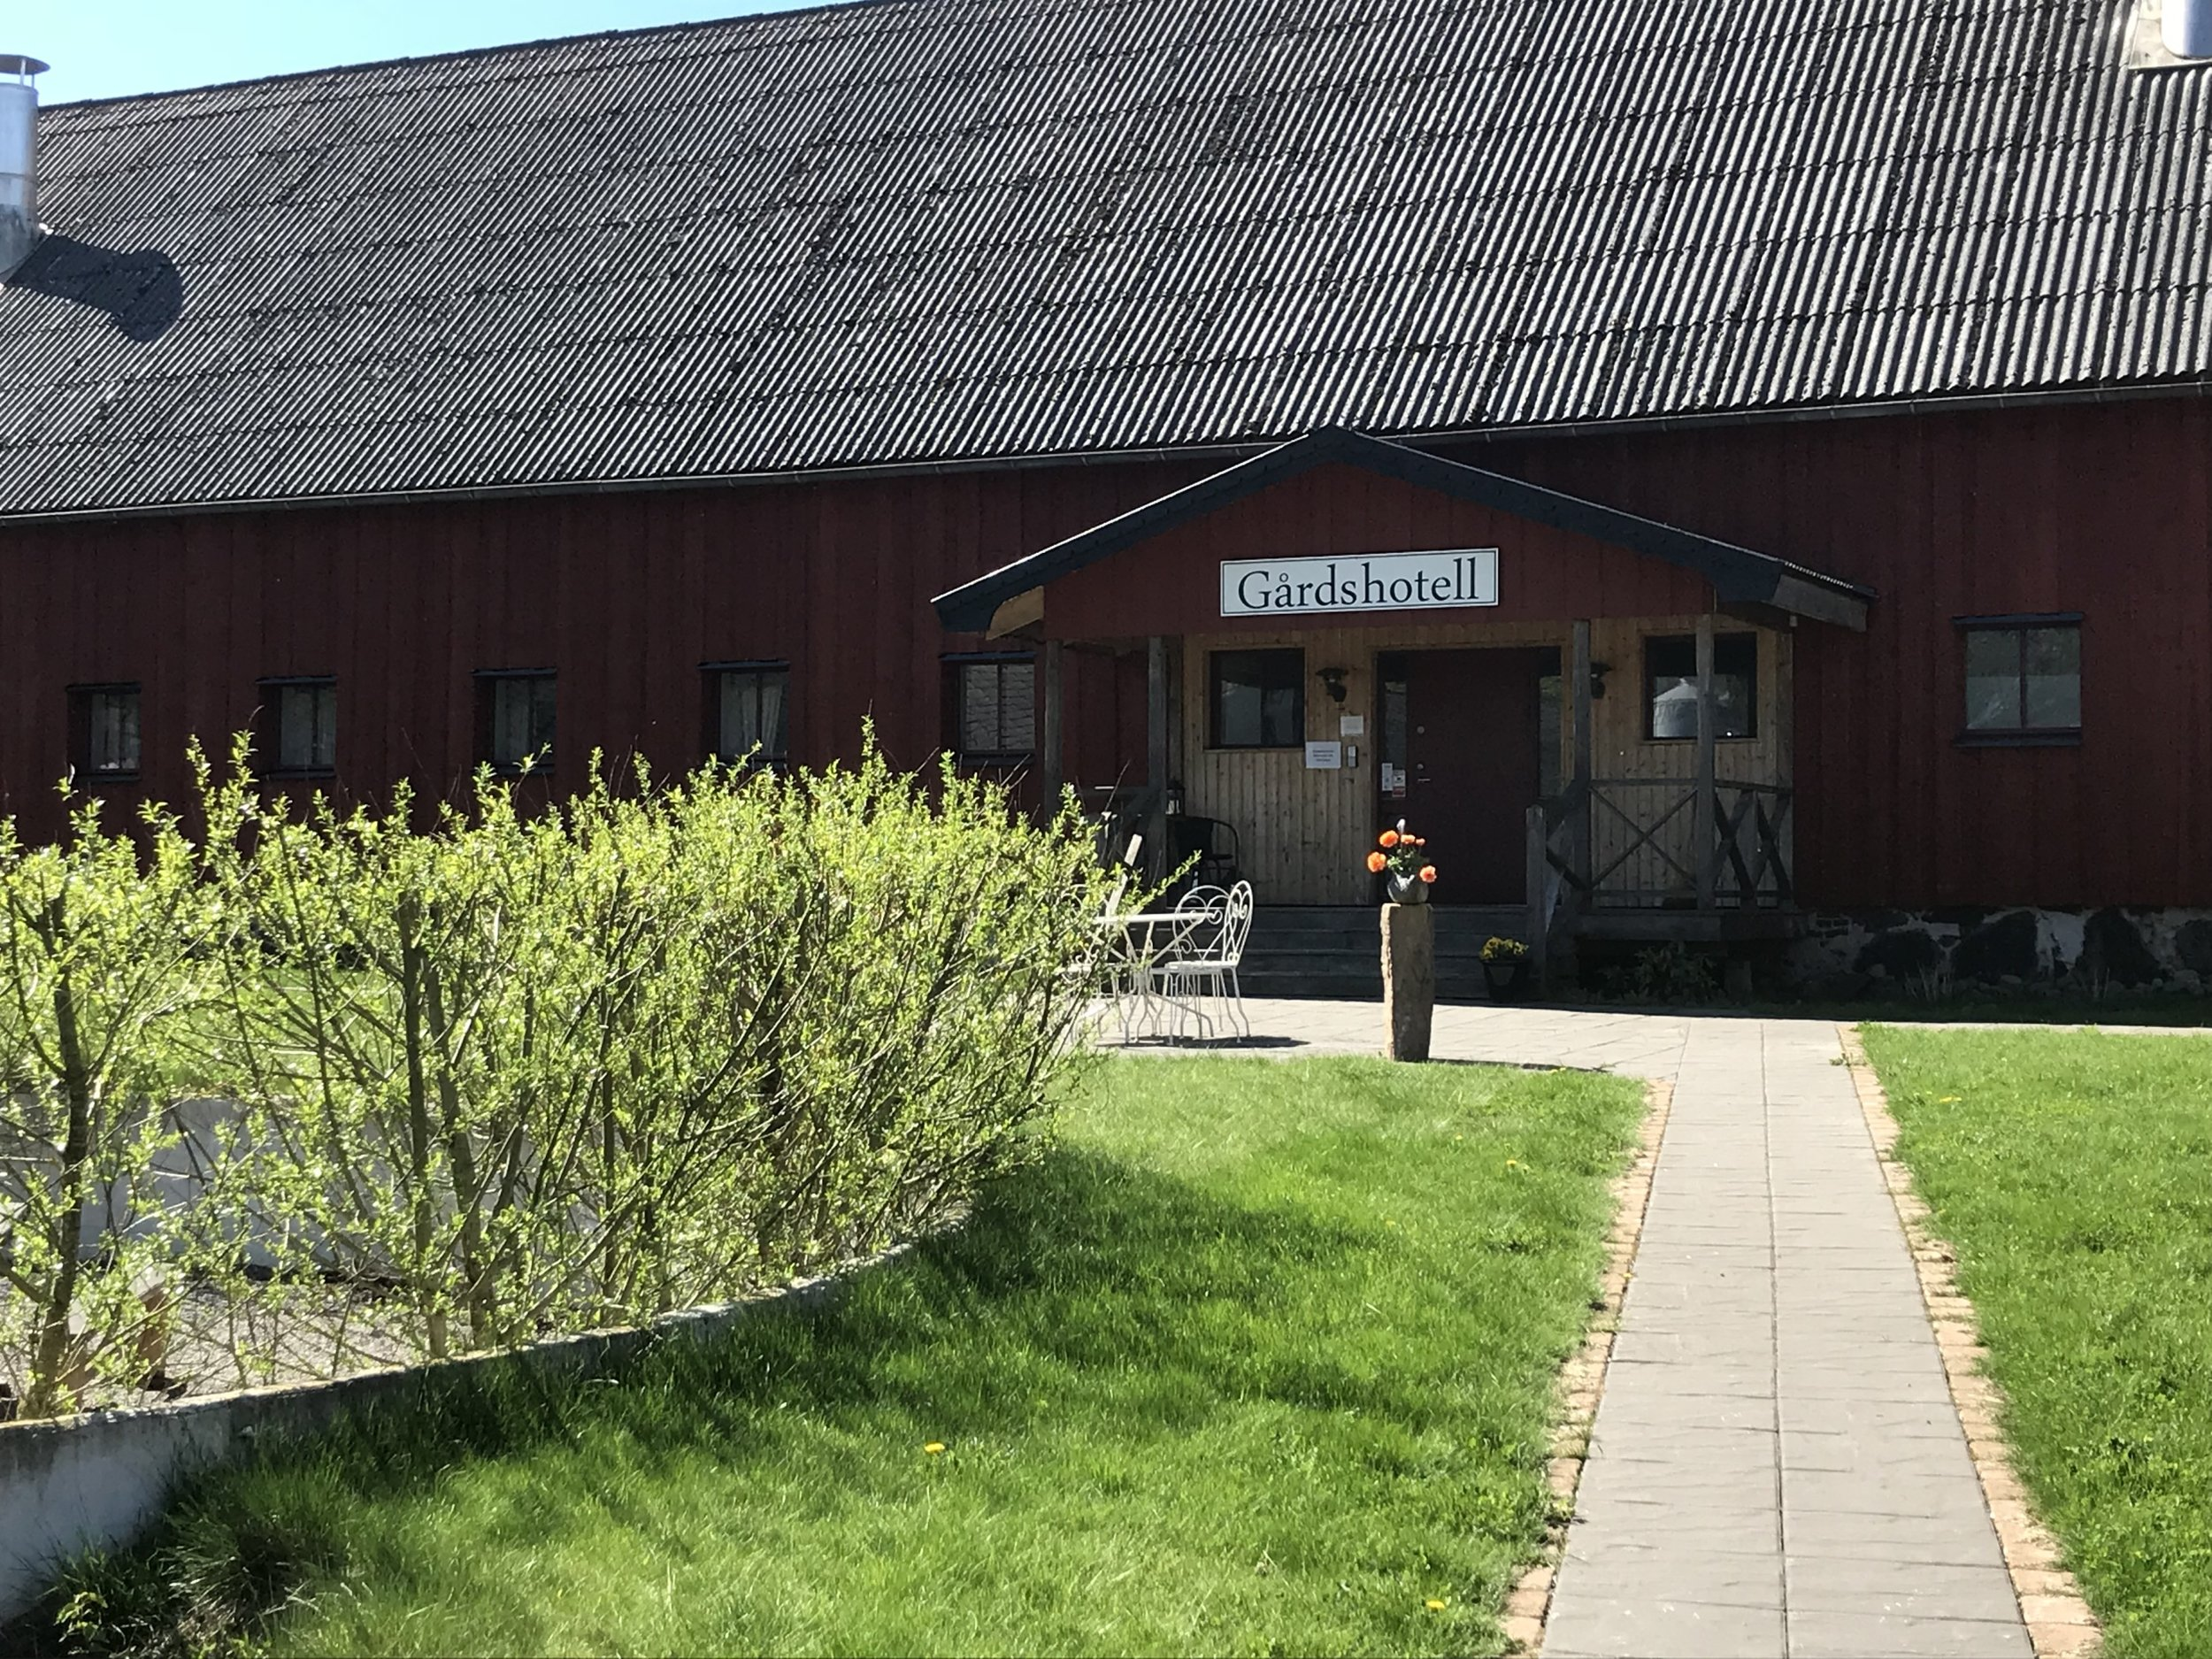 Vallens Säteri Gårdshotell - Vallen's manorial has ancestry all the way back to the 14th century and is located between Rössjöholm in Skåne and Laholm in Halland.10 minutes distance by car.